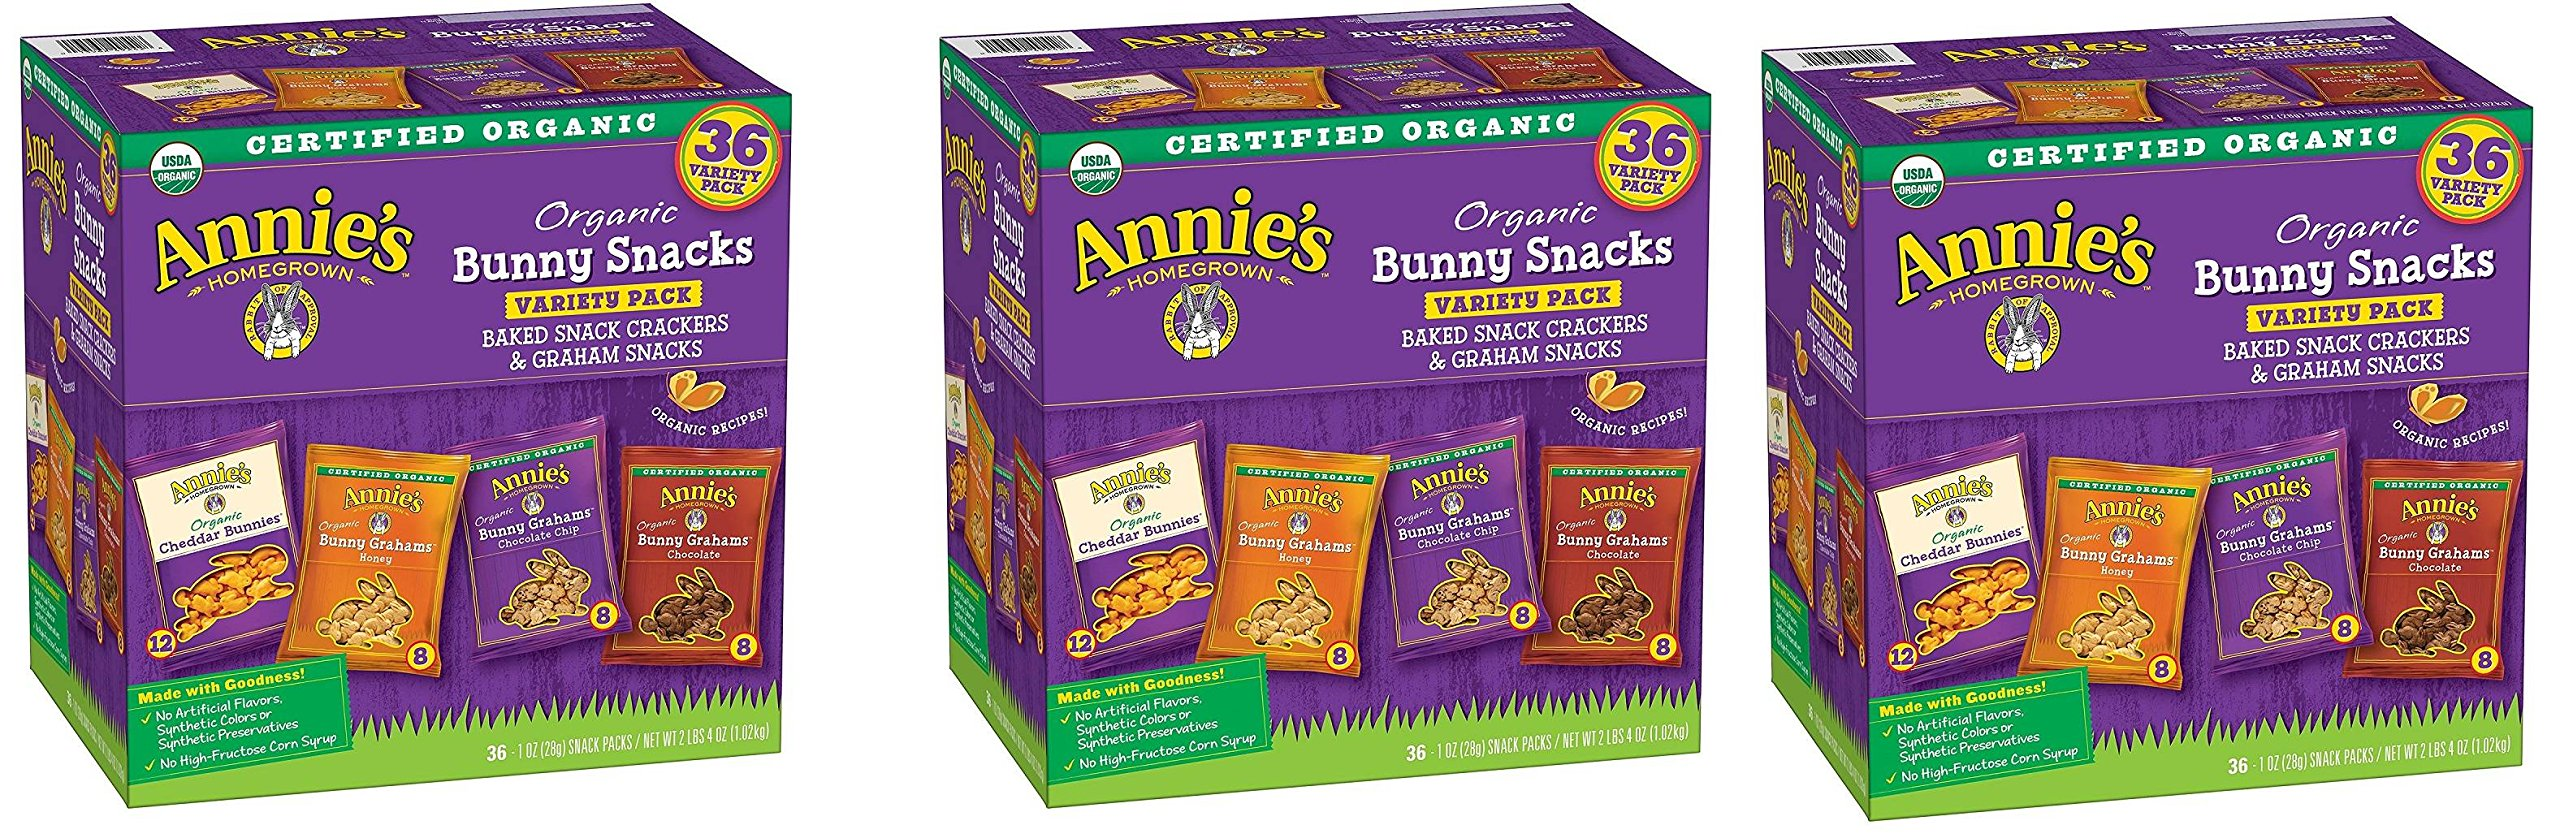 Annies Organic Variety Pack, Cheddar Bunnies and Bunny Graham Crackers Snack Packs, 36 Pouches, 1 oz Each GpbDVV, 3 Pack by Annie's Homegrown